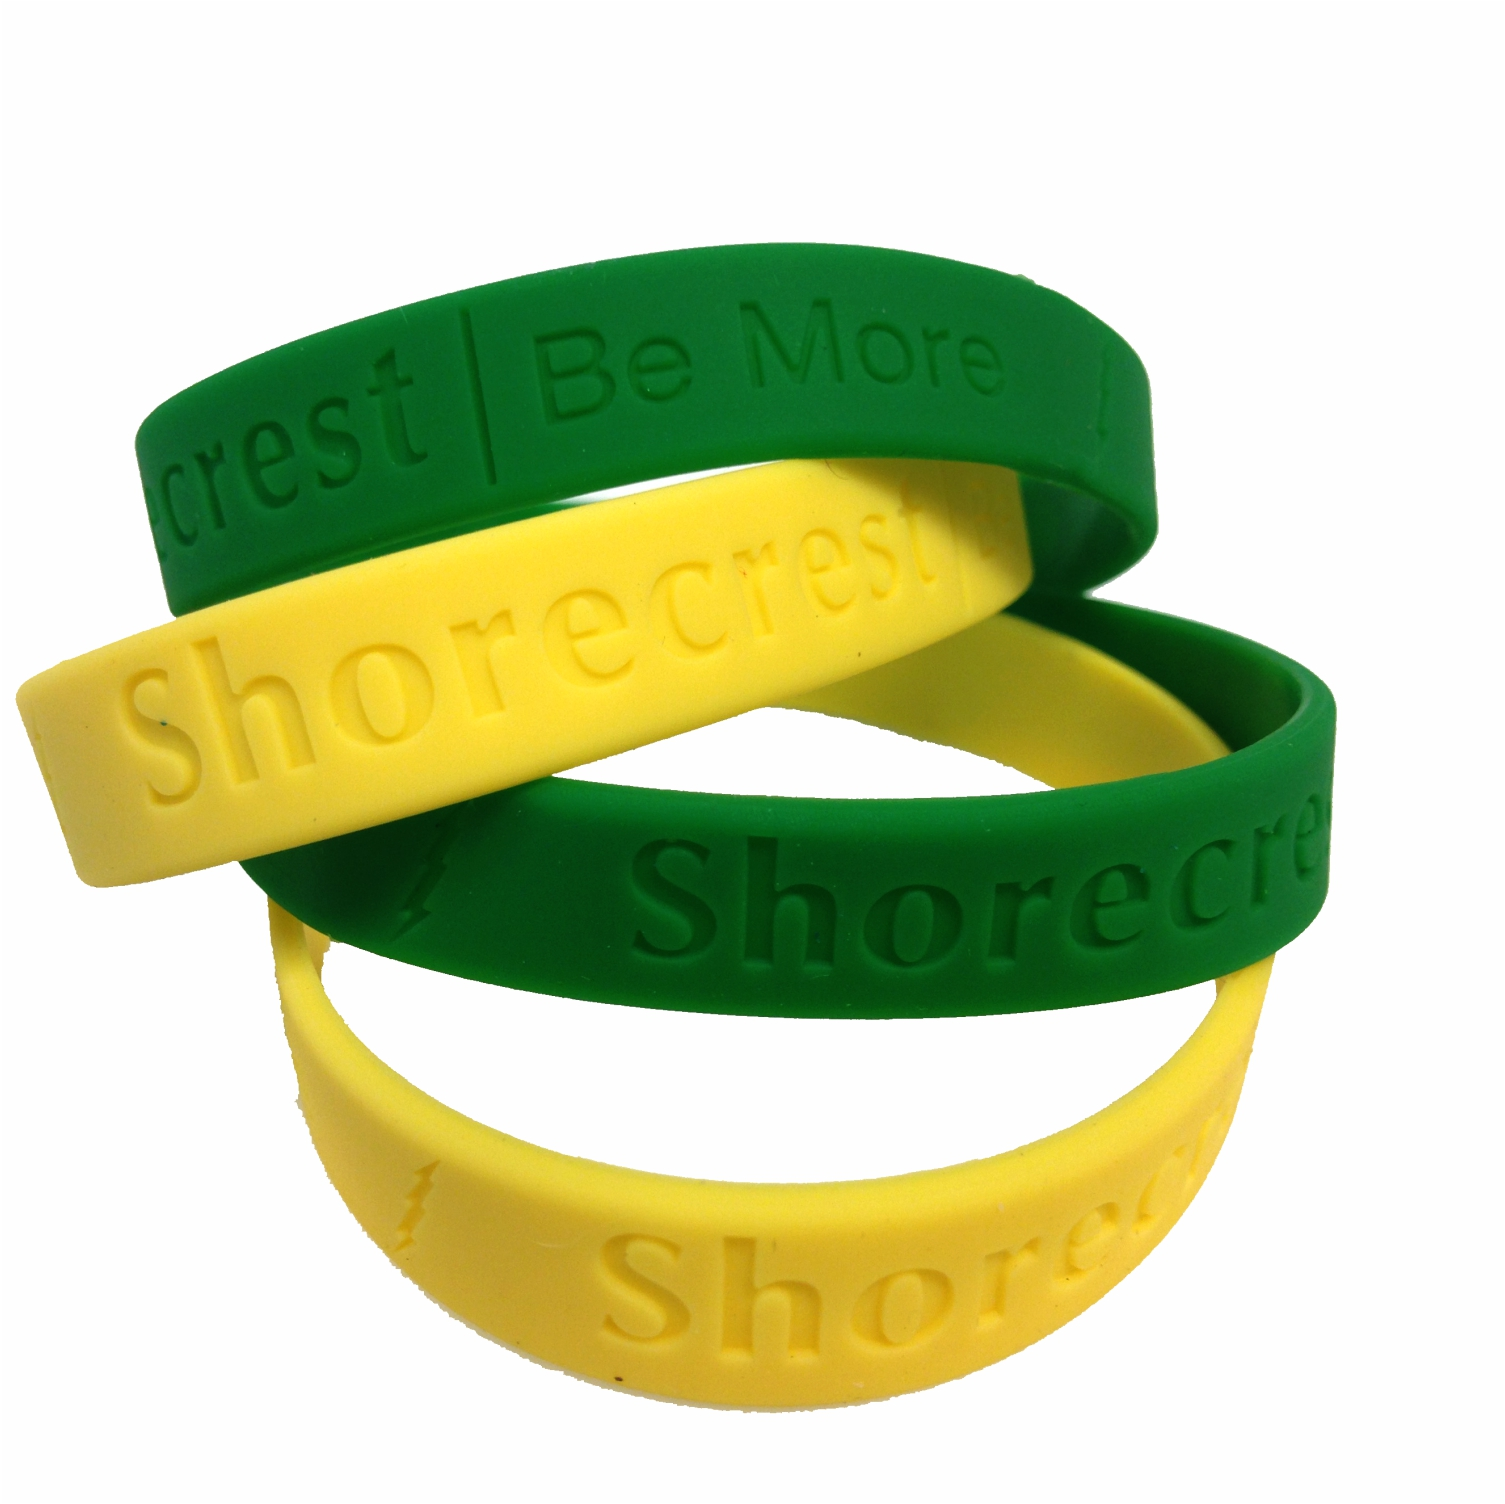 Promo Shorecrest Green Yellow Bracelets